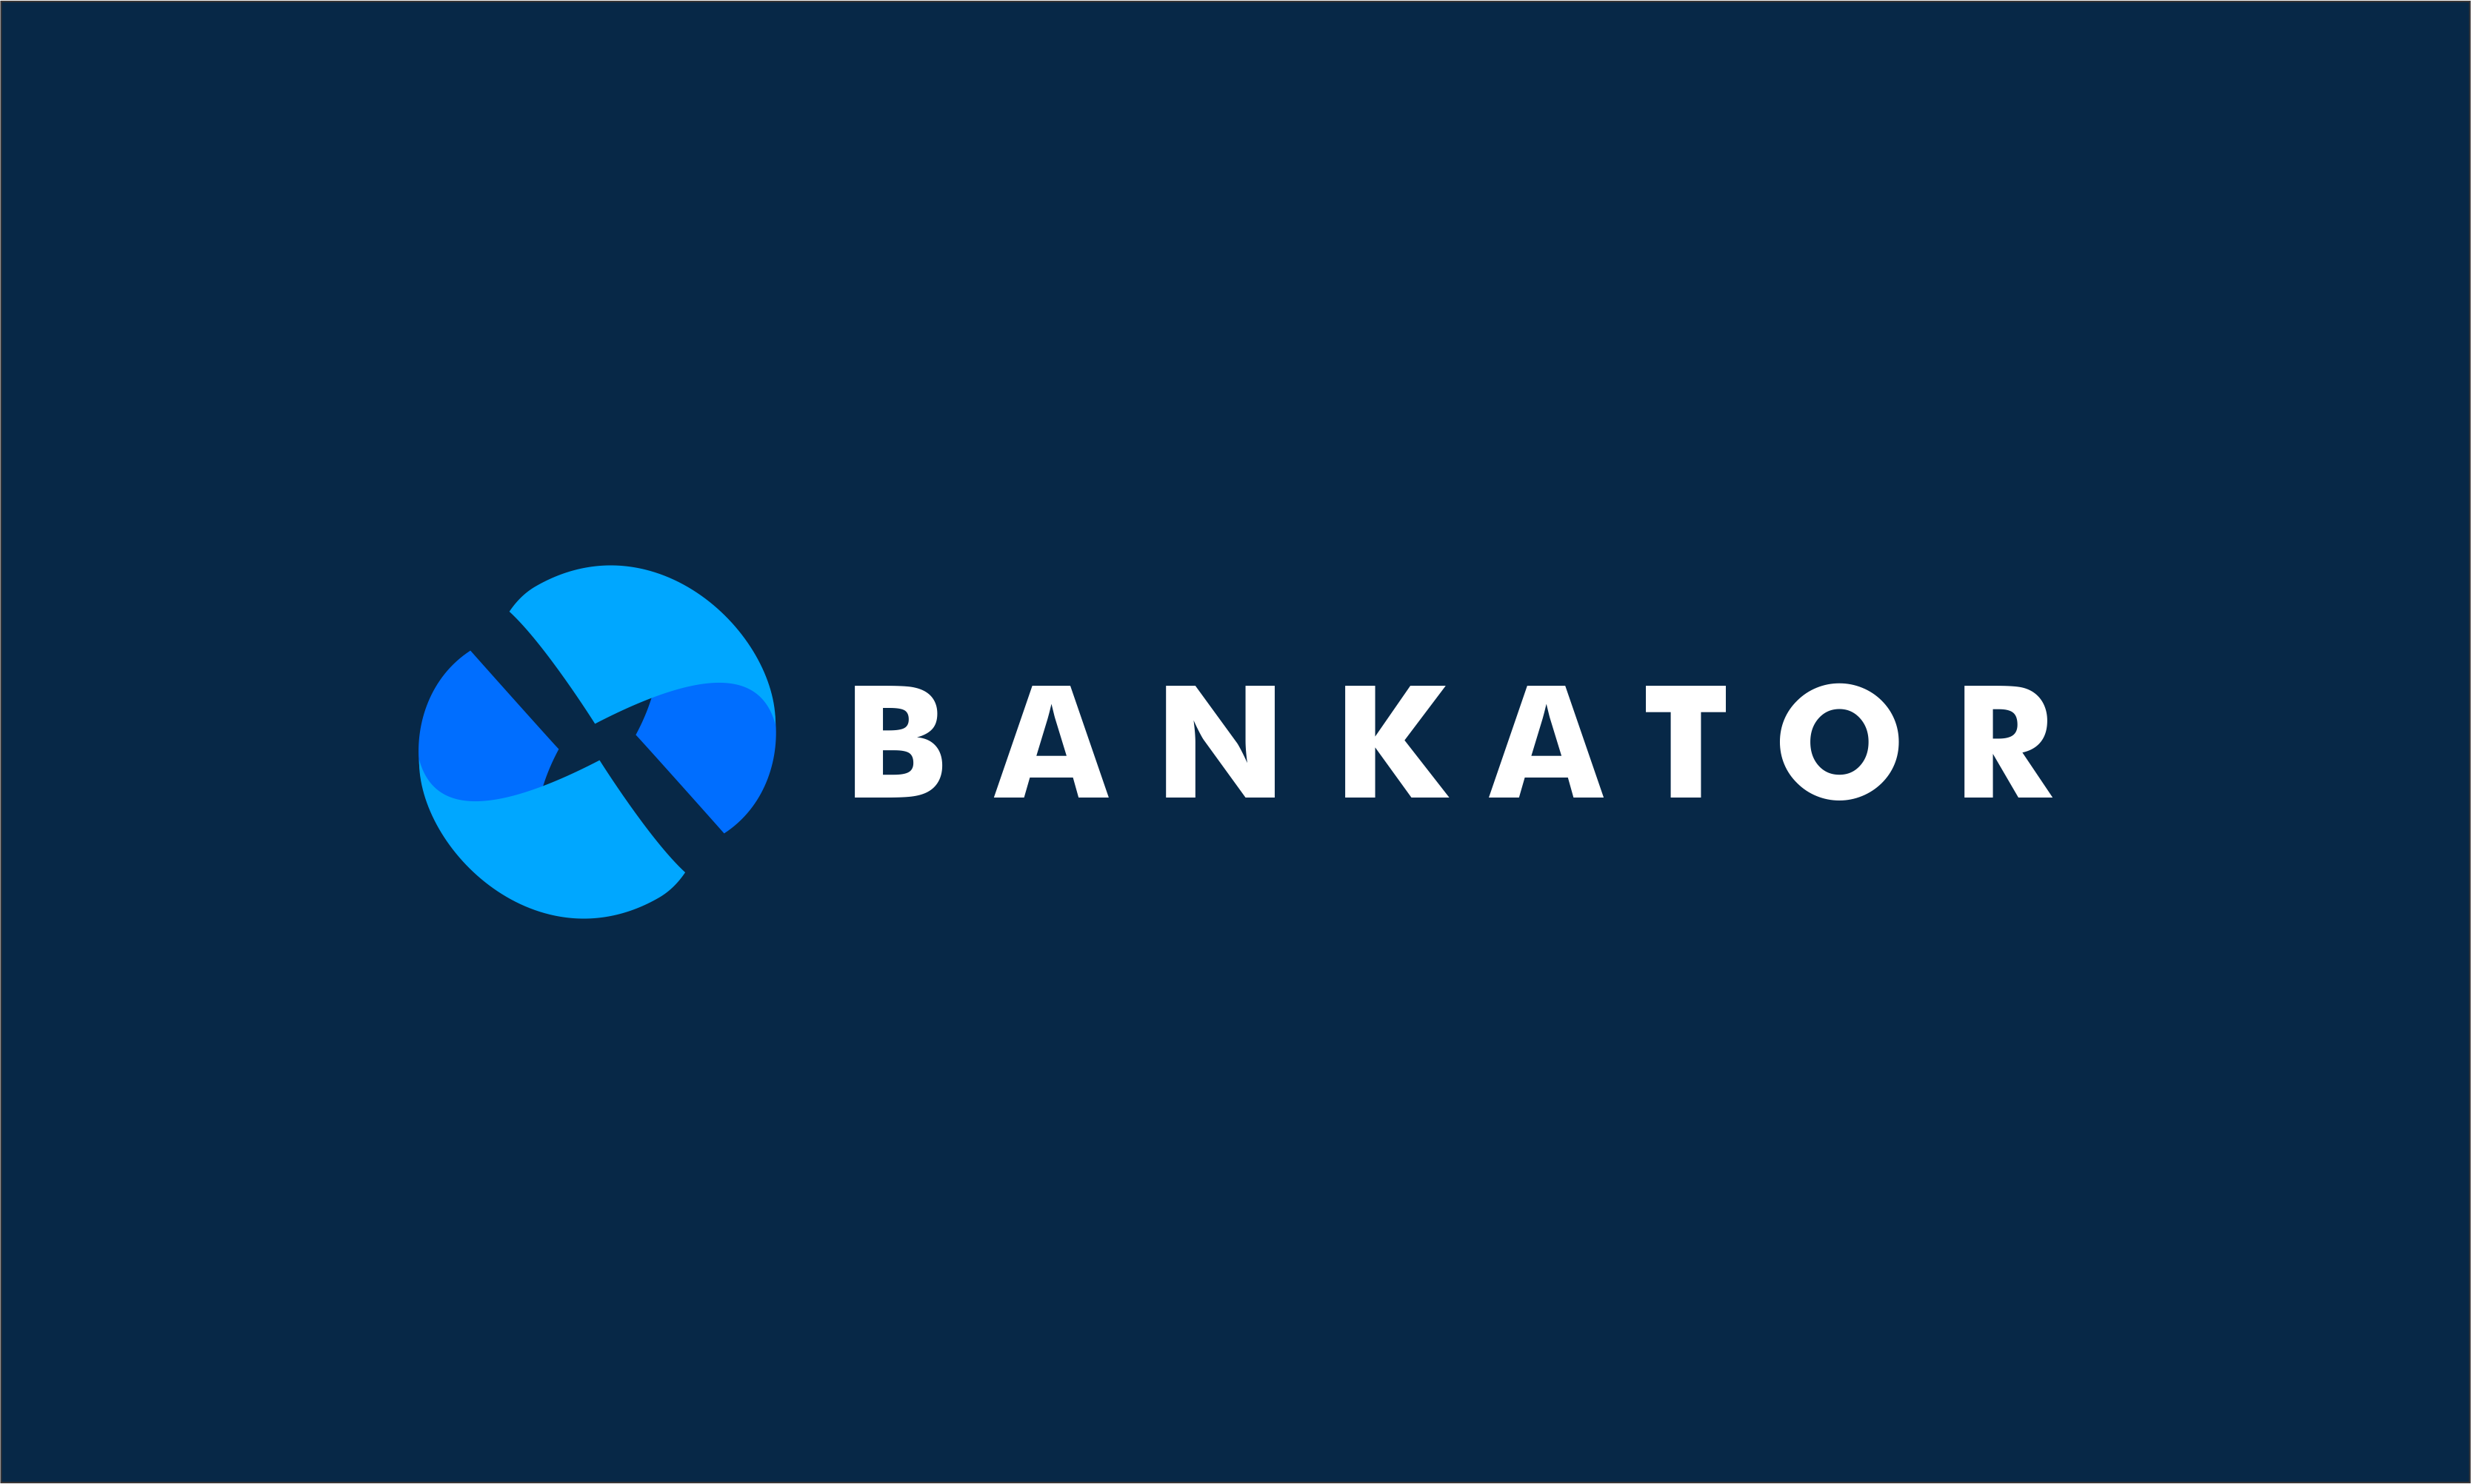 Bankator - Banking domain name for sale